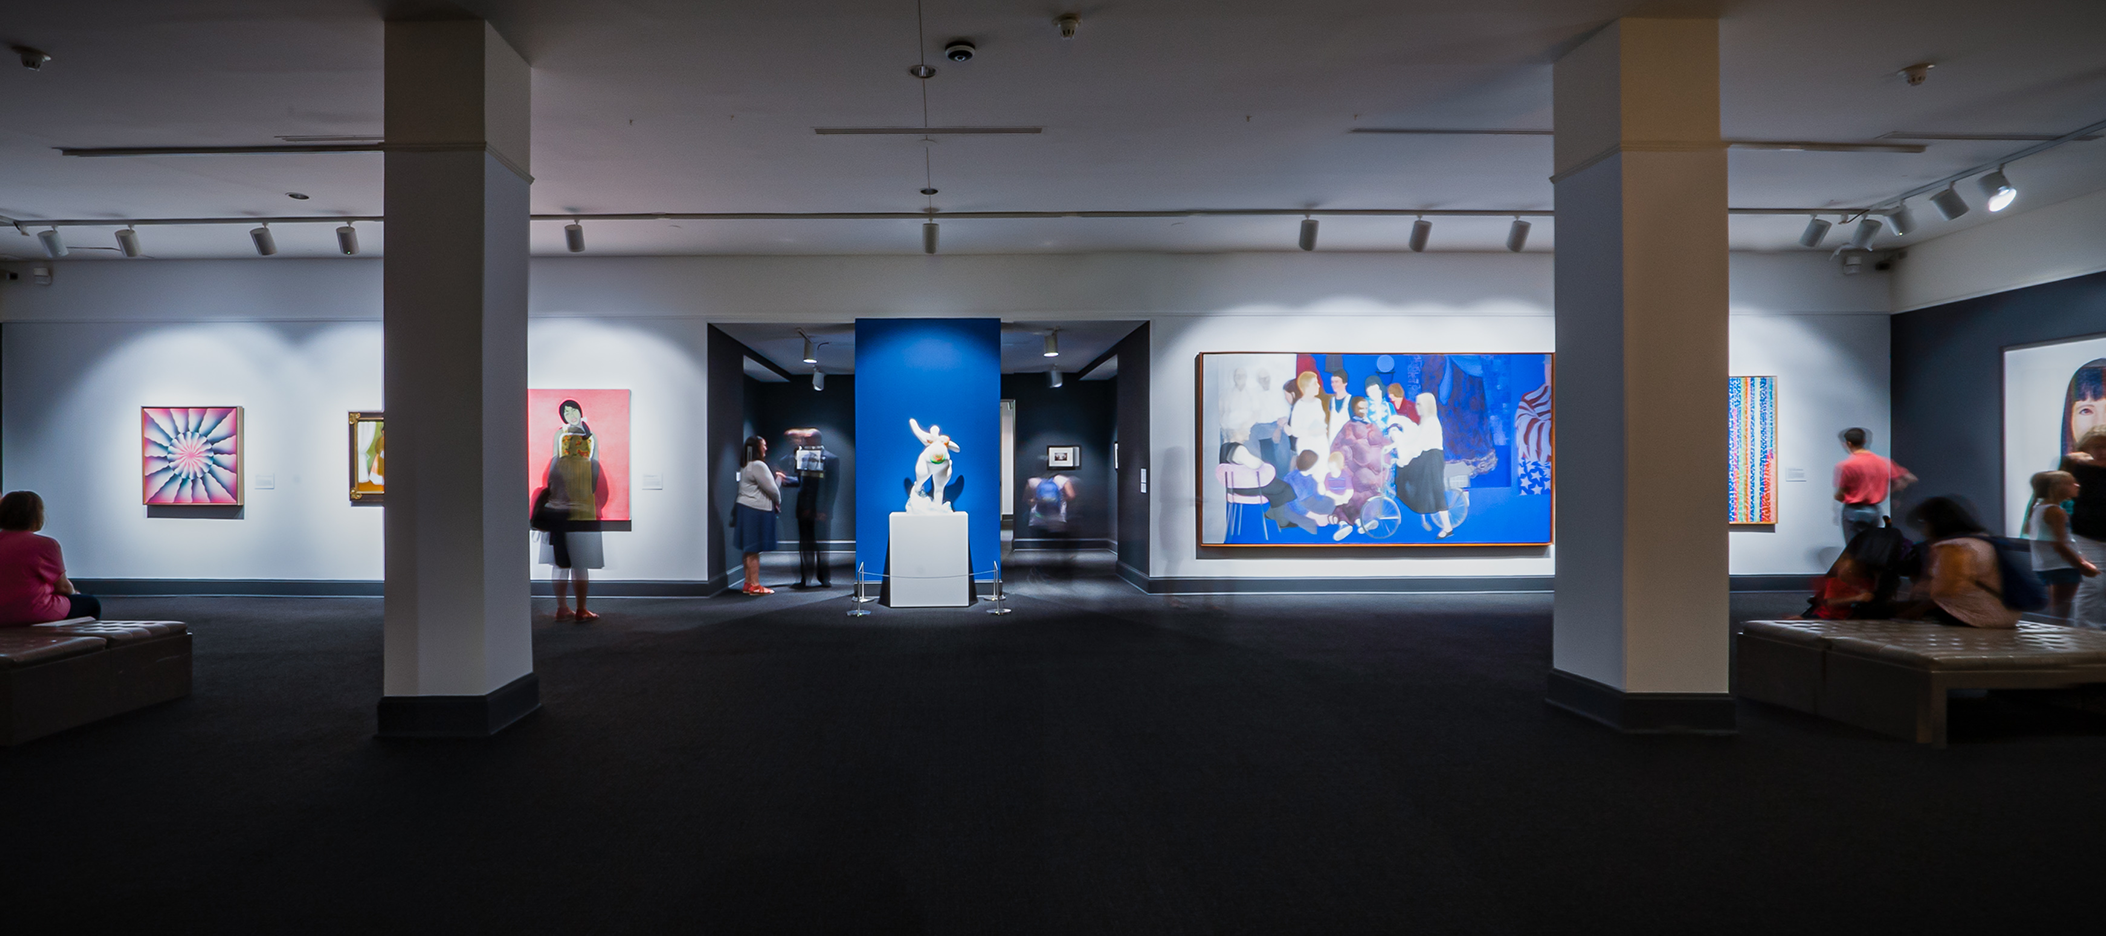 Wide angle view showing a full gallery. The floor is a dark gray carpet and there are two columns, through which large scale works in vibrant colors are visible.